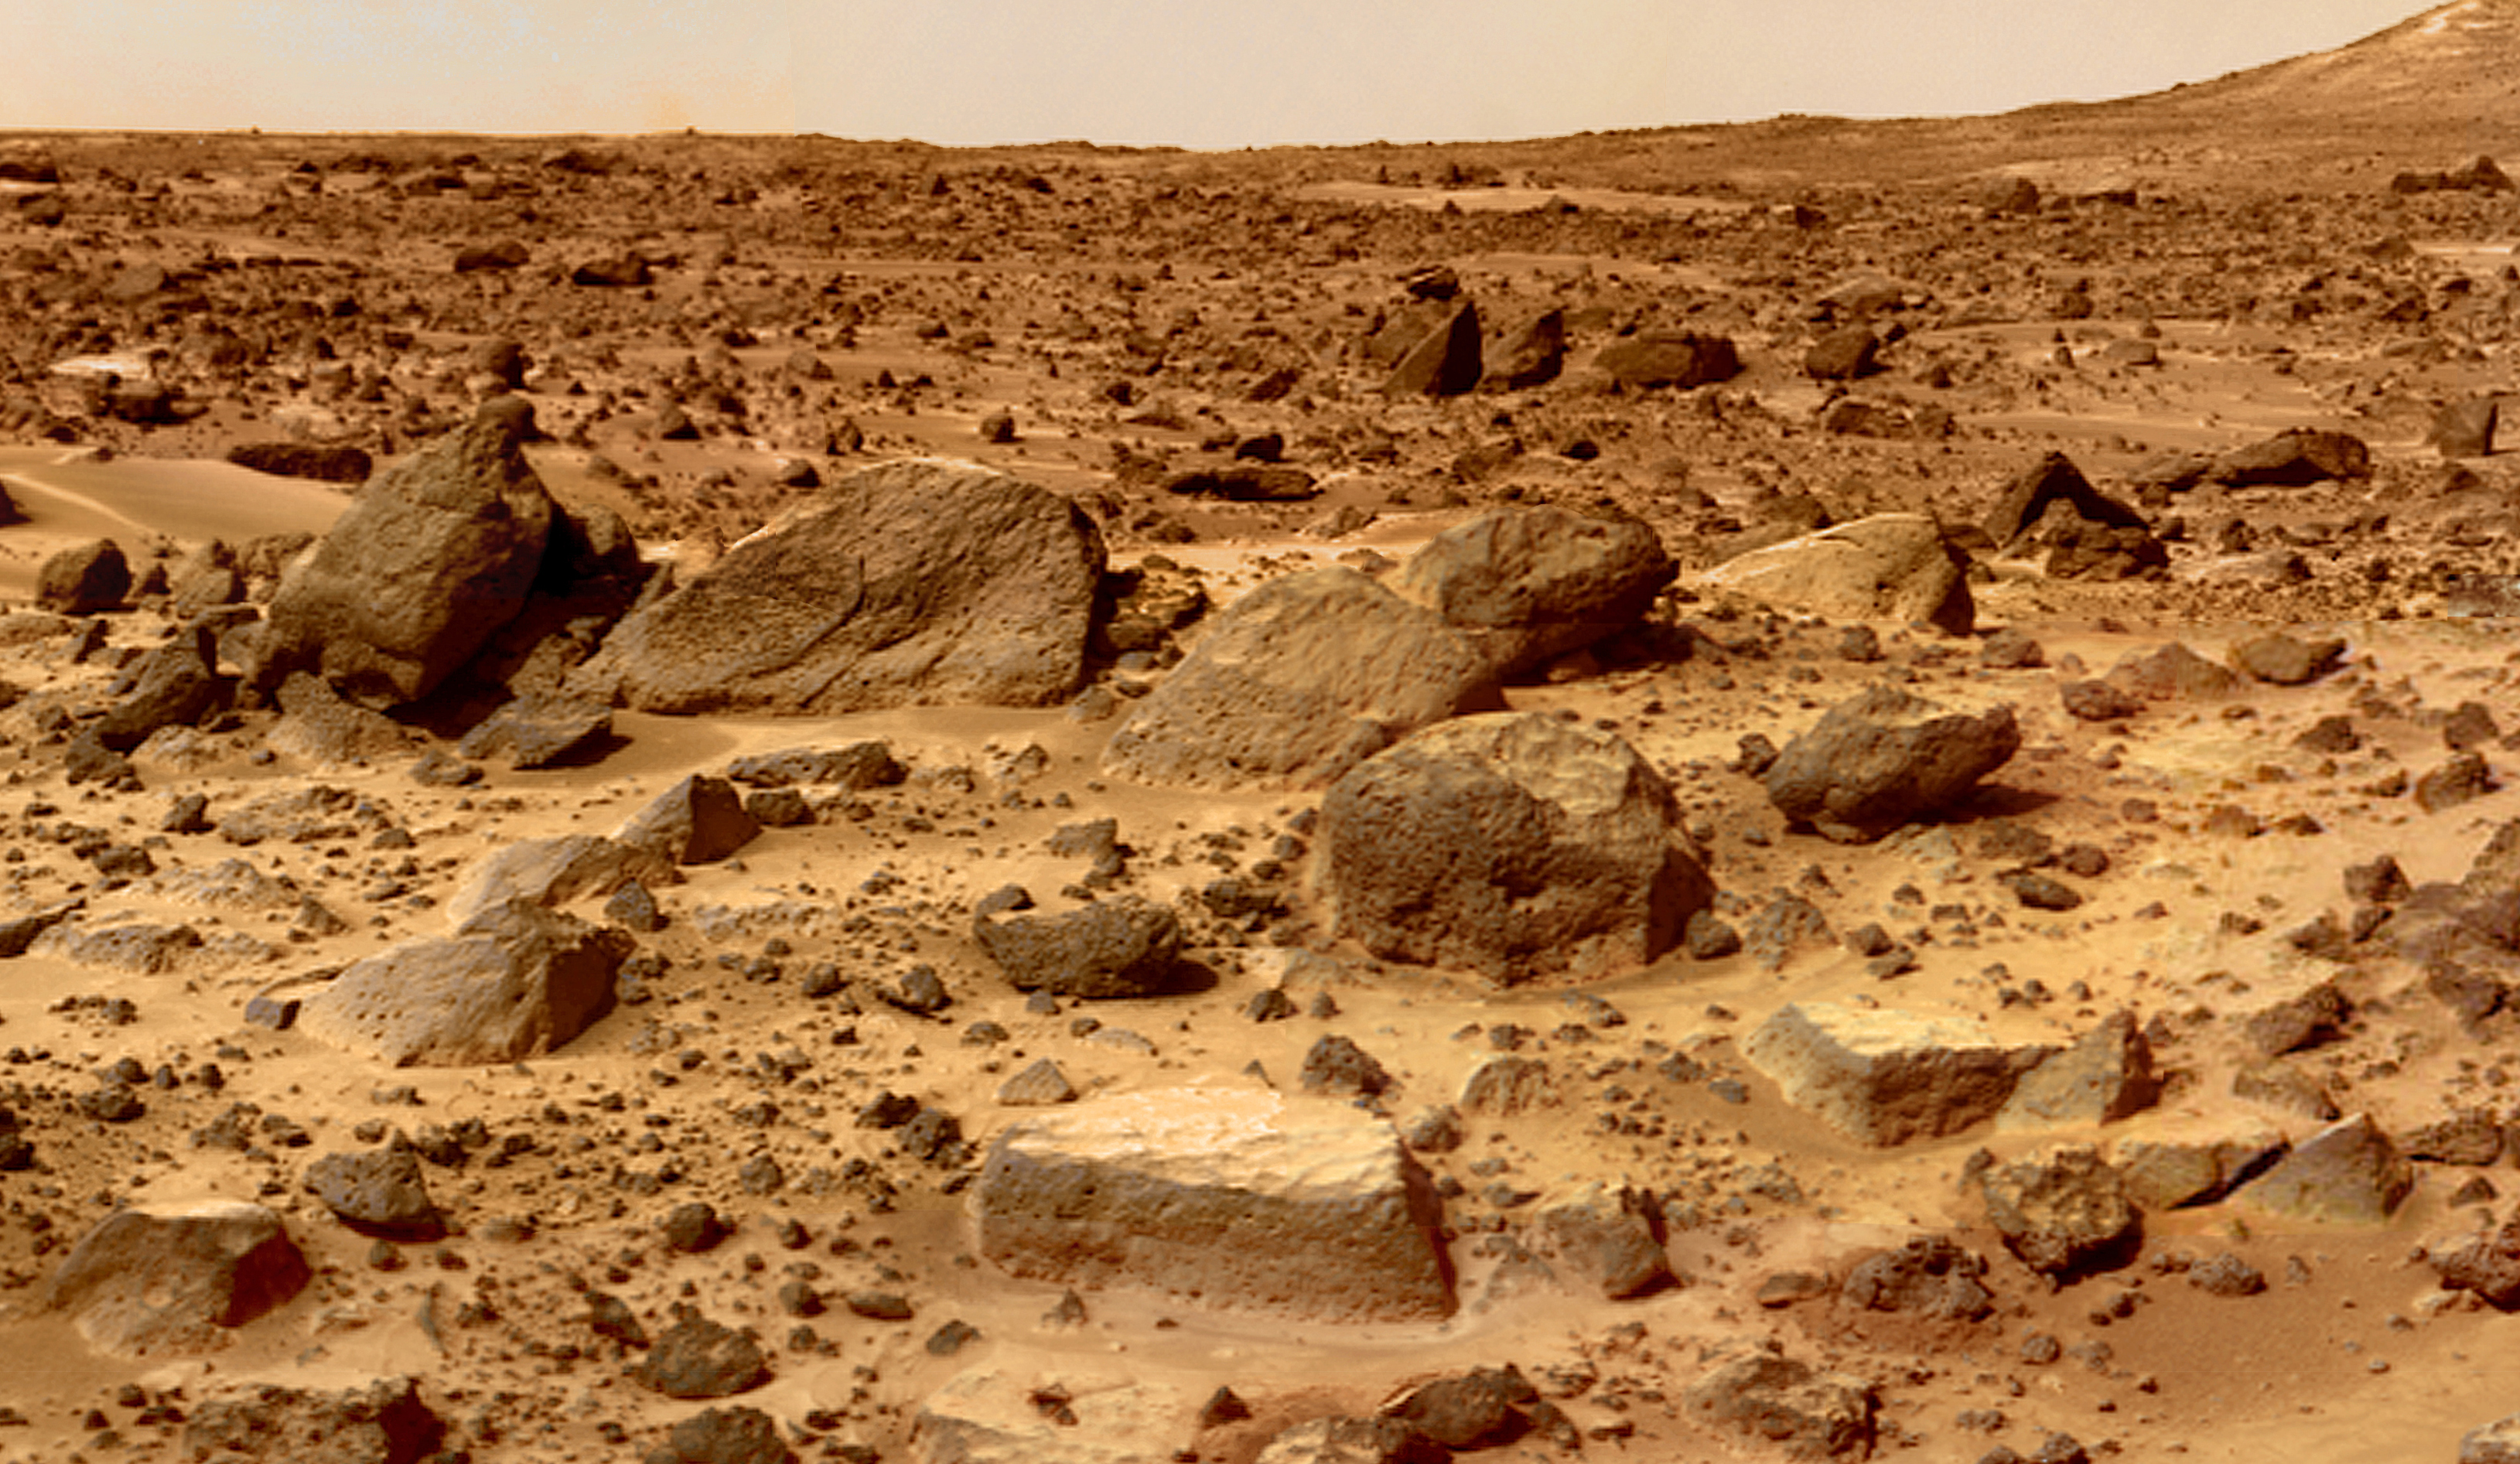 rocks on earth from mars - photo #3